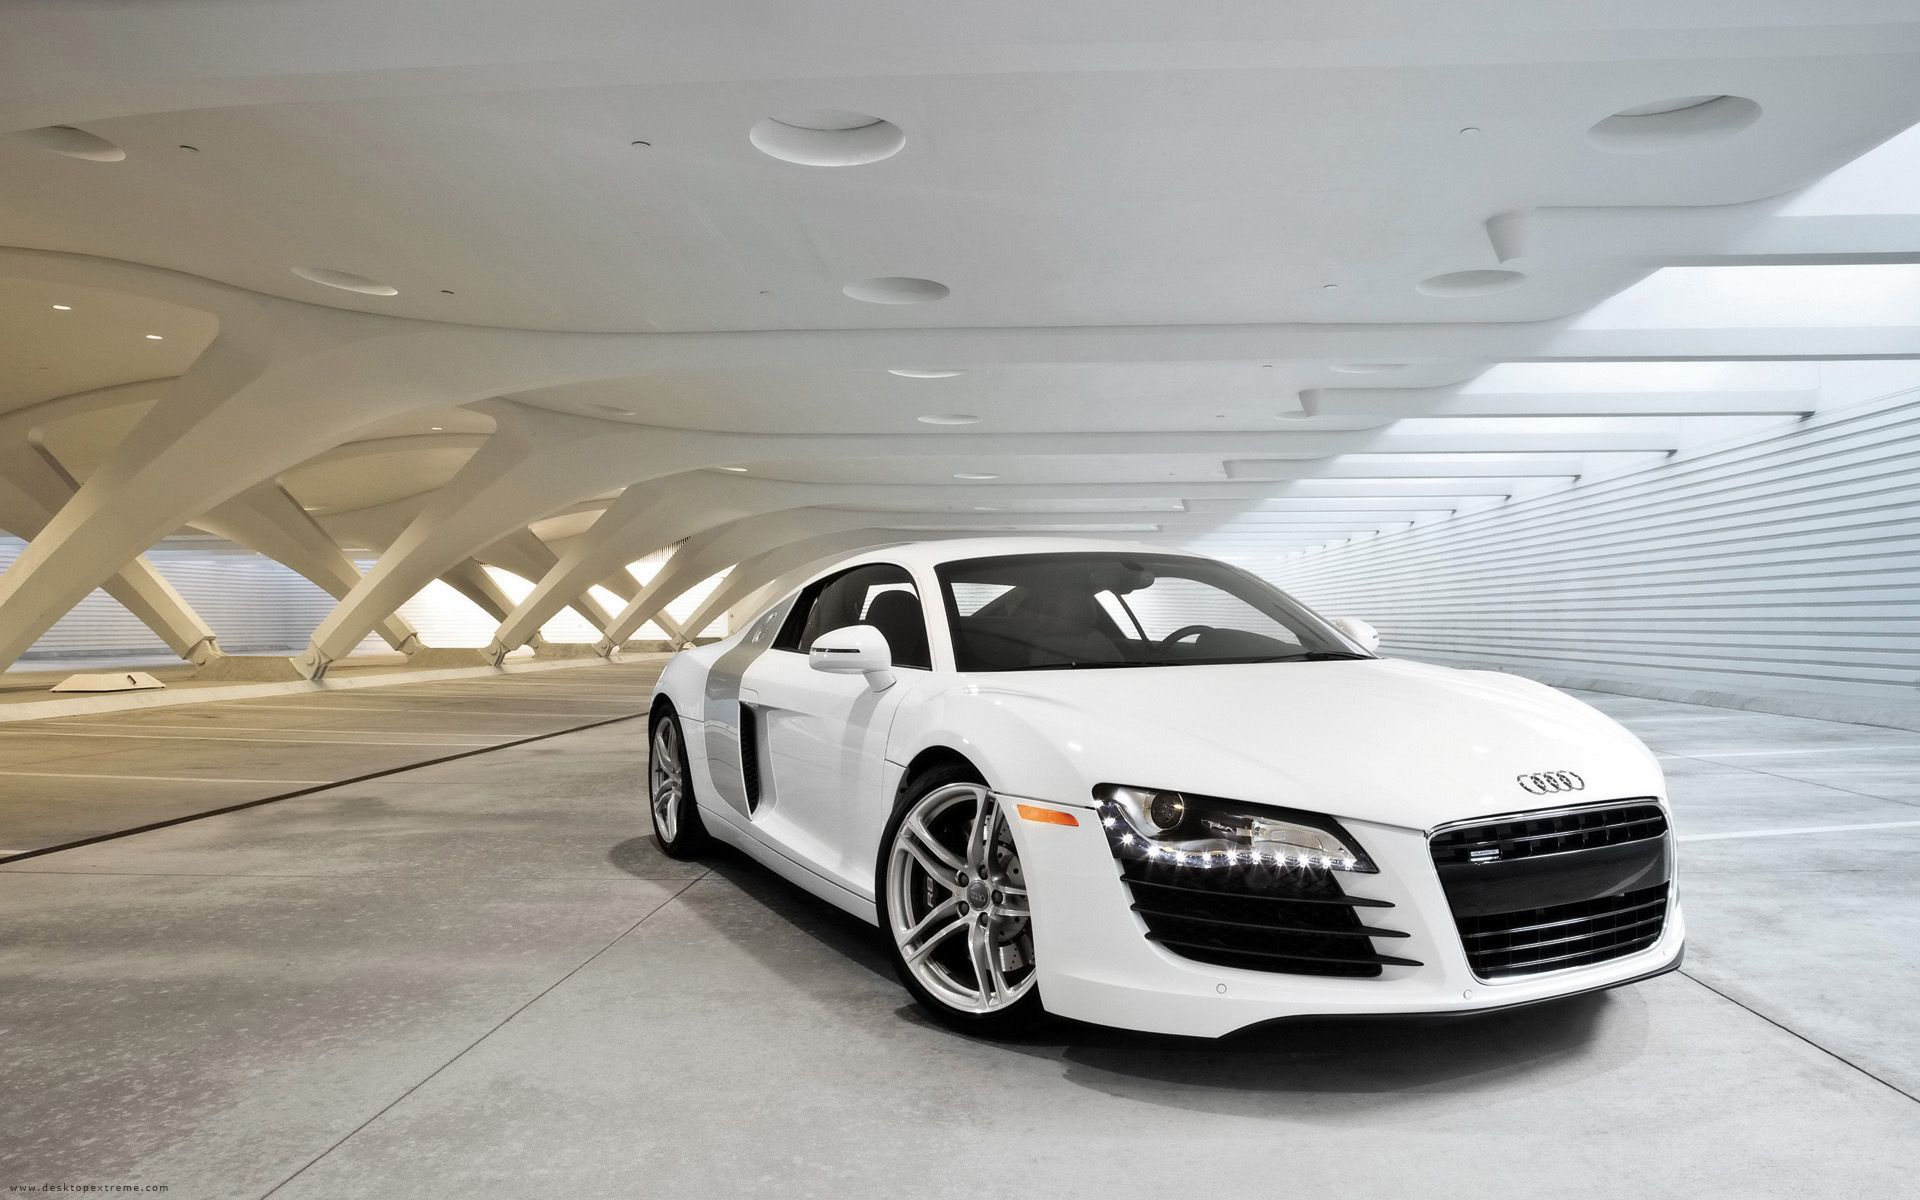 Audi R8 Wallpapers HD - Wallpaper Cave